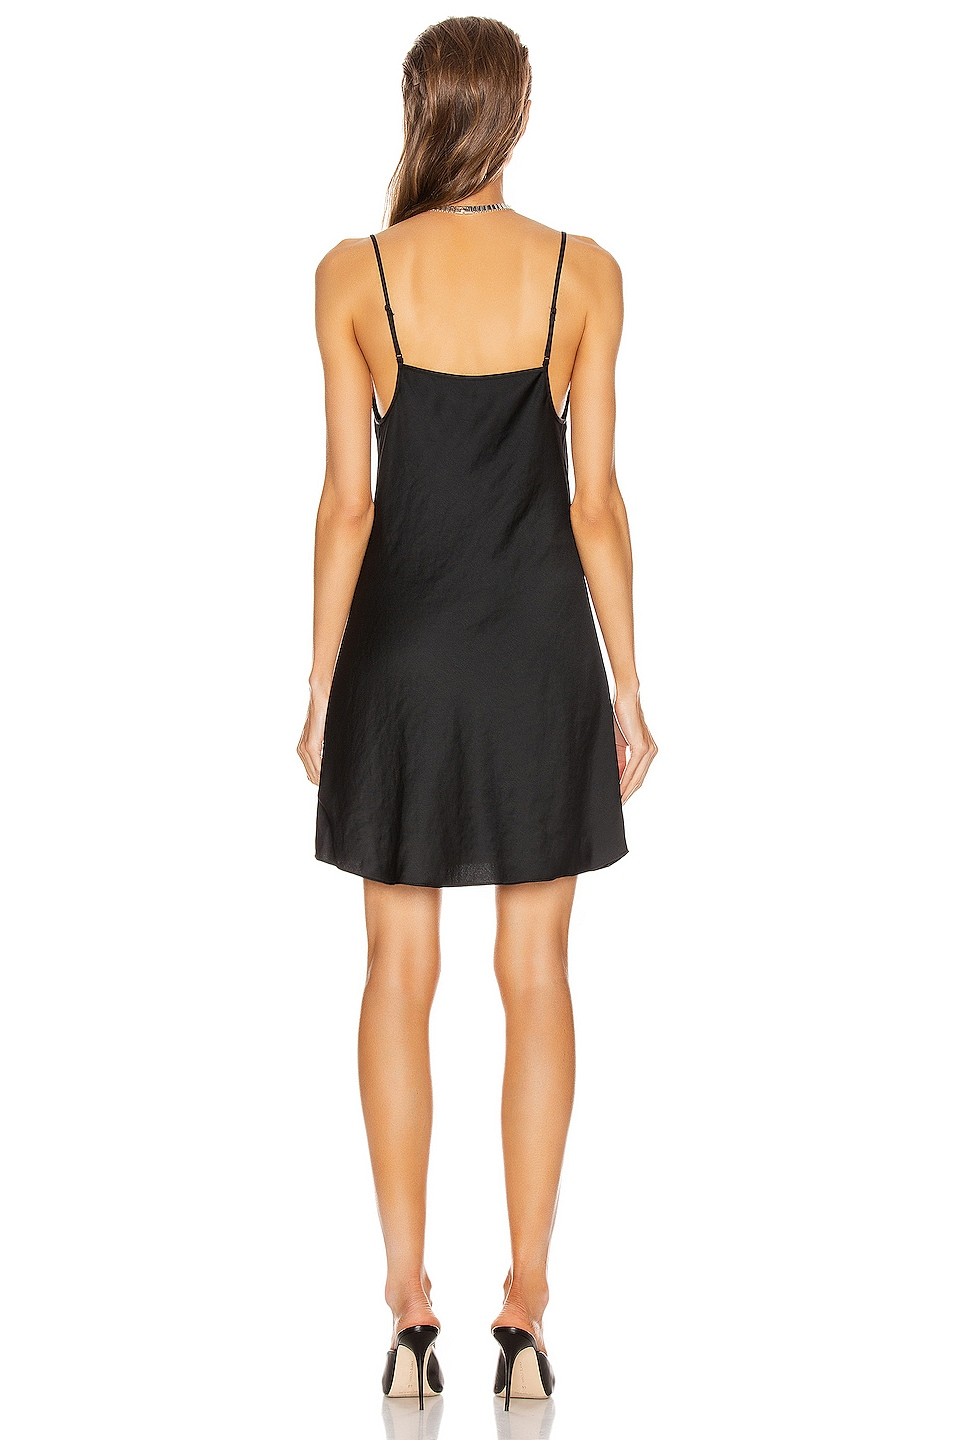 Image 3 of T by Alexander Wang Light Wash & Go Mini Cami Dress in Black